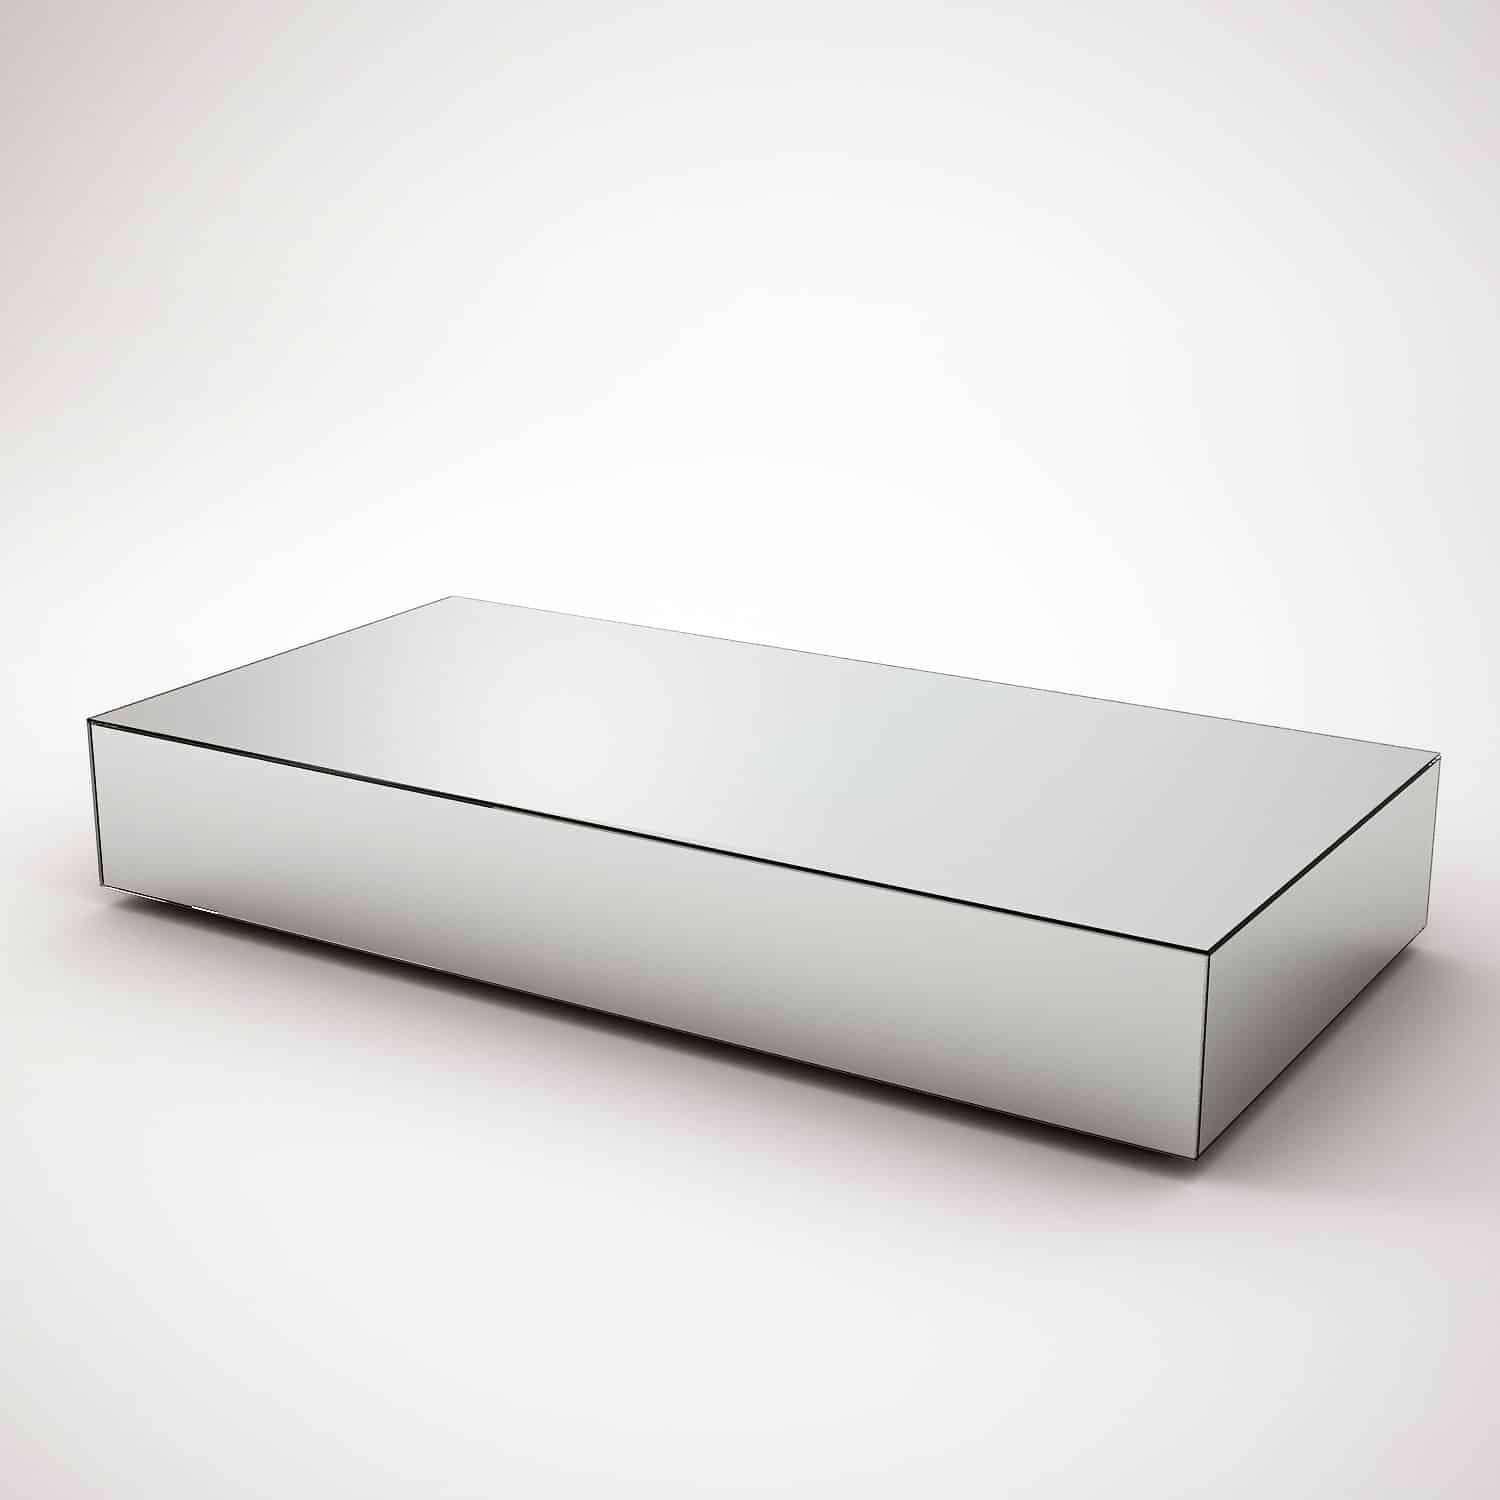 Rectangular mirrored coffee table by mirrorbox klarity for Mirrored rectangular coffee table